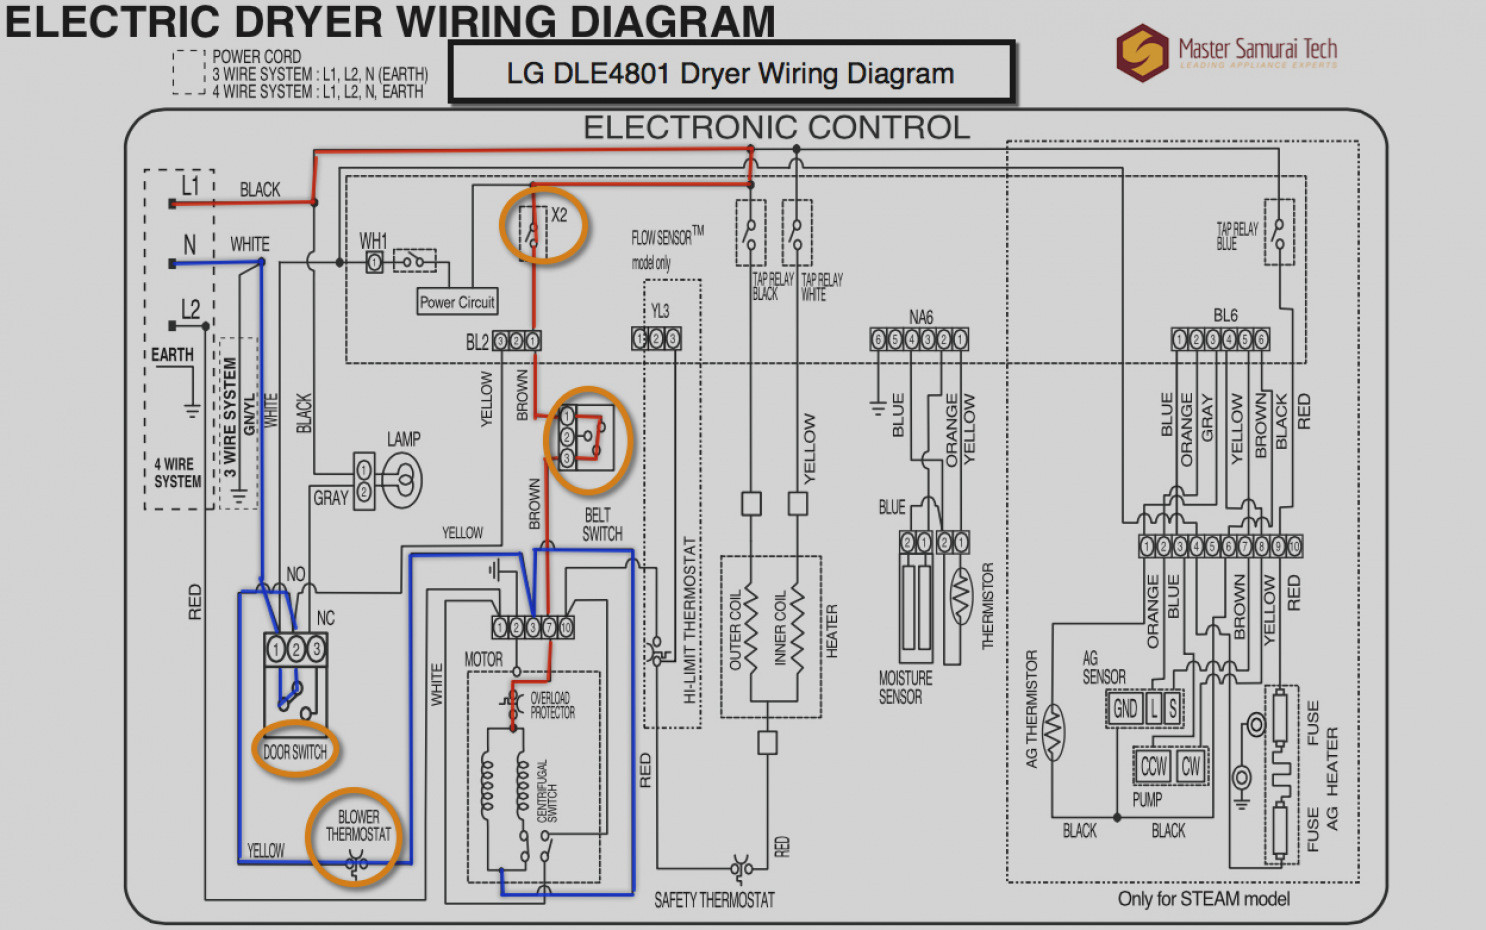 hight resolution of maytag gas dryer wiring diagram wiring diagram third level maytag neptune gas dryer wiring diagram maytag gas dryer wiring schematic